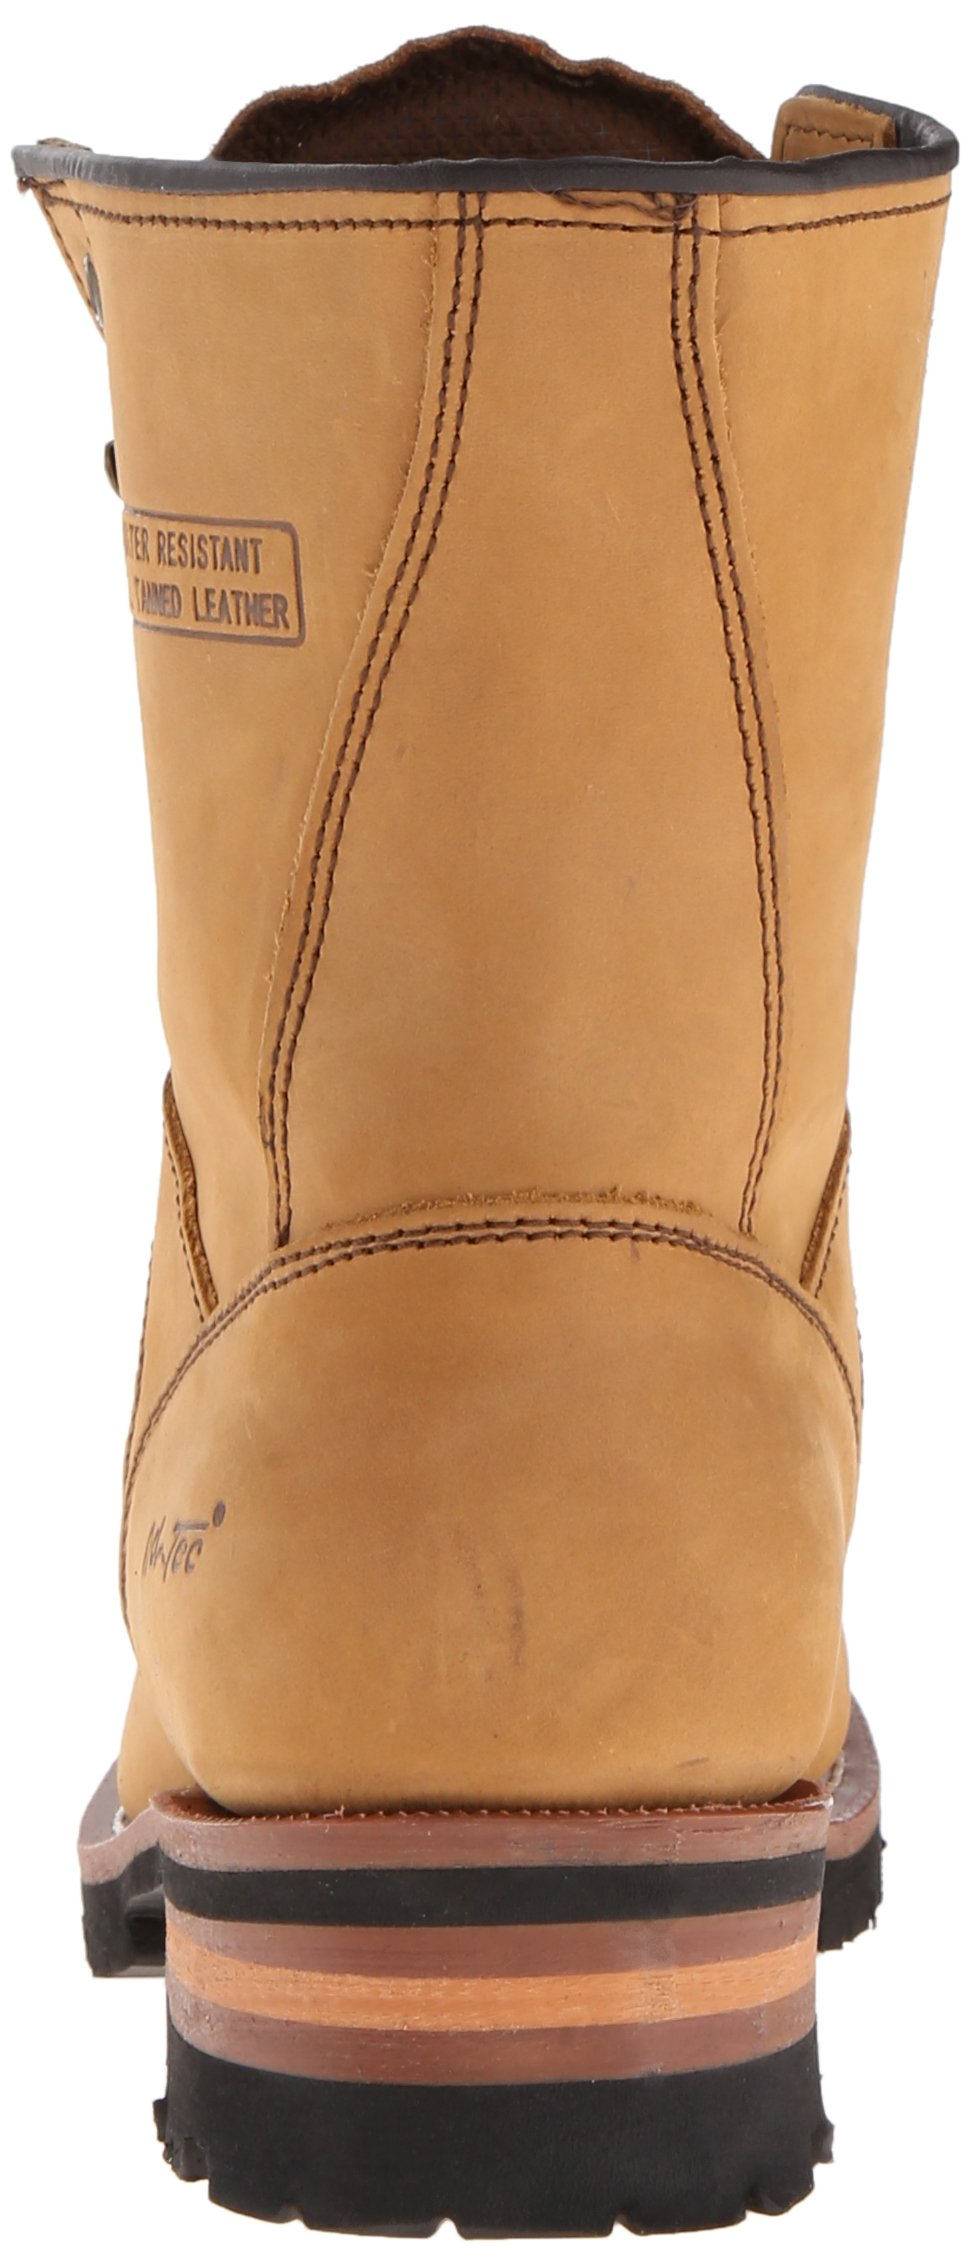 Adtec Men's 9 inch Logger Boot, Brown, 9 W US by Adtec (Image #2)